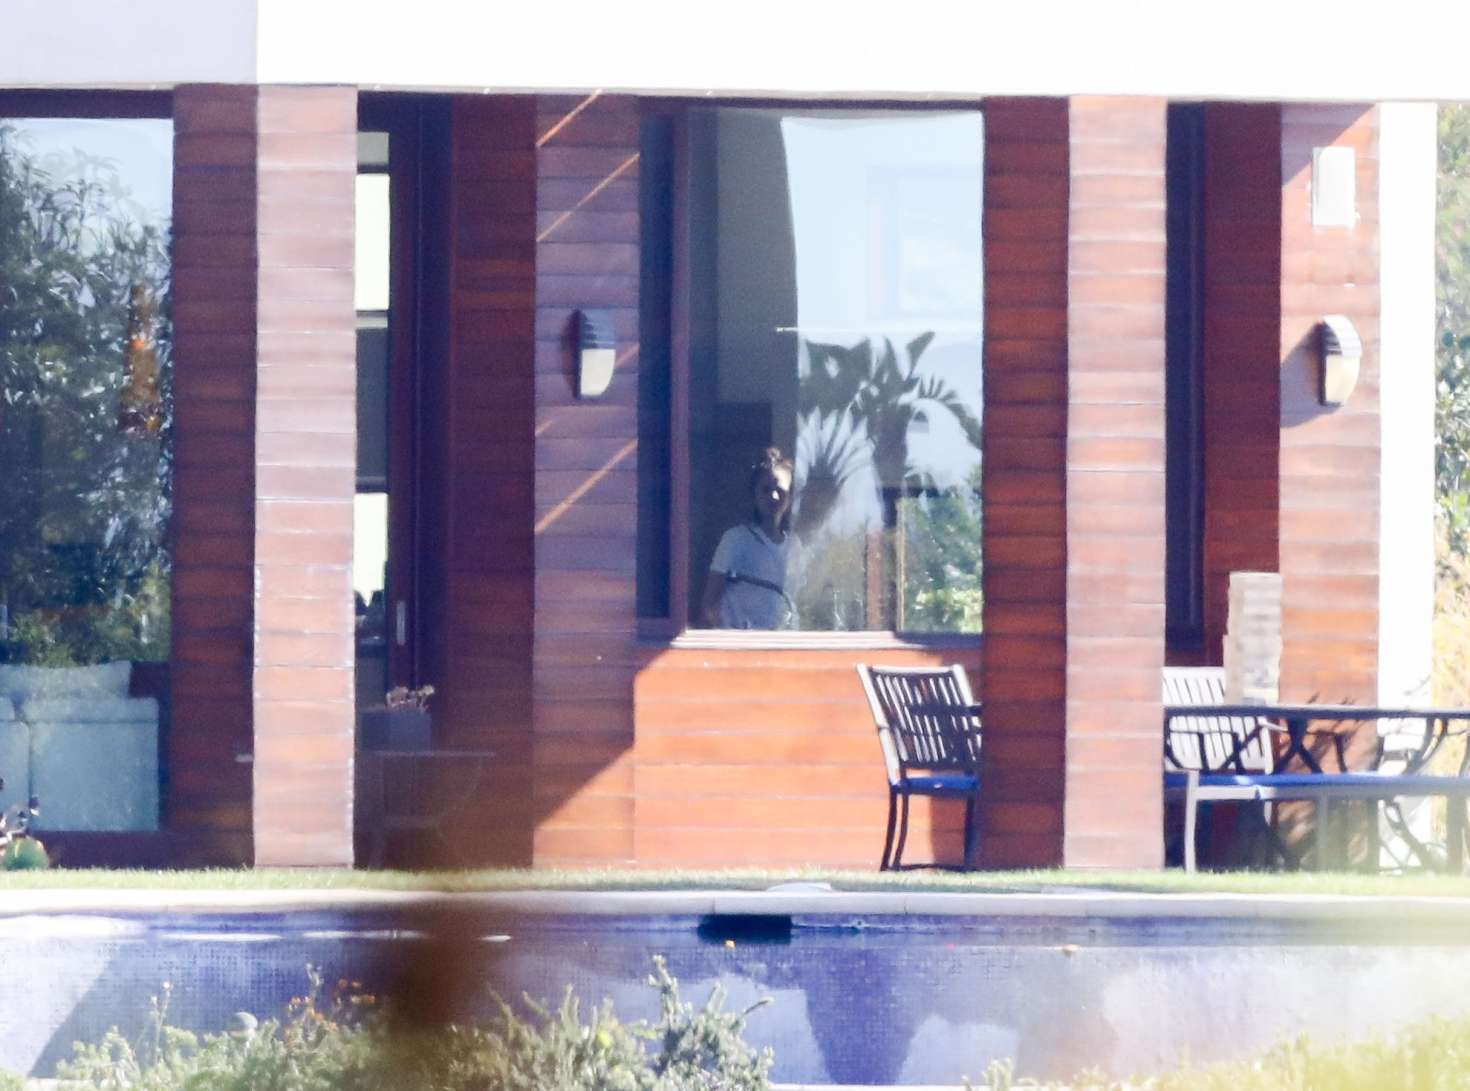 Enamour Her Puppy Selena Gomez Spends Time Justin Bieber At A Rentalhouse Full Size Selena Gomez Spends Time Her Puppy Justin Bieber At A Justin Bieber House Beverly Hills Justin Bieber House Tour 201 curbed Justin Bieber House